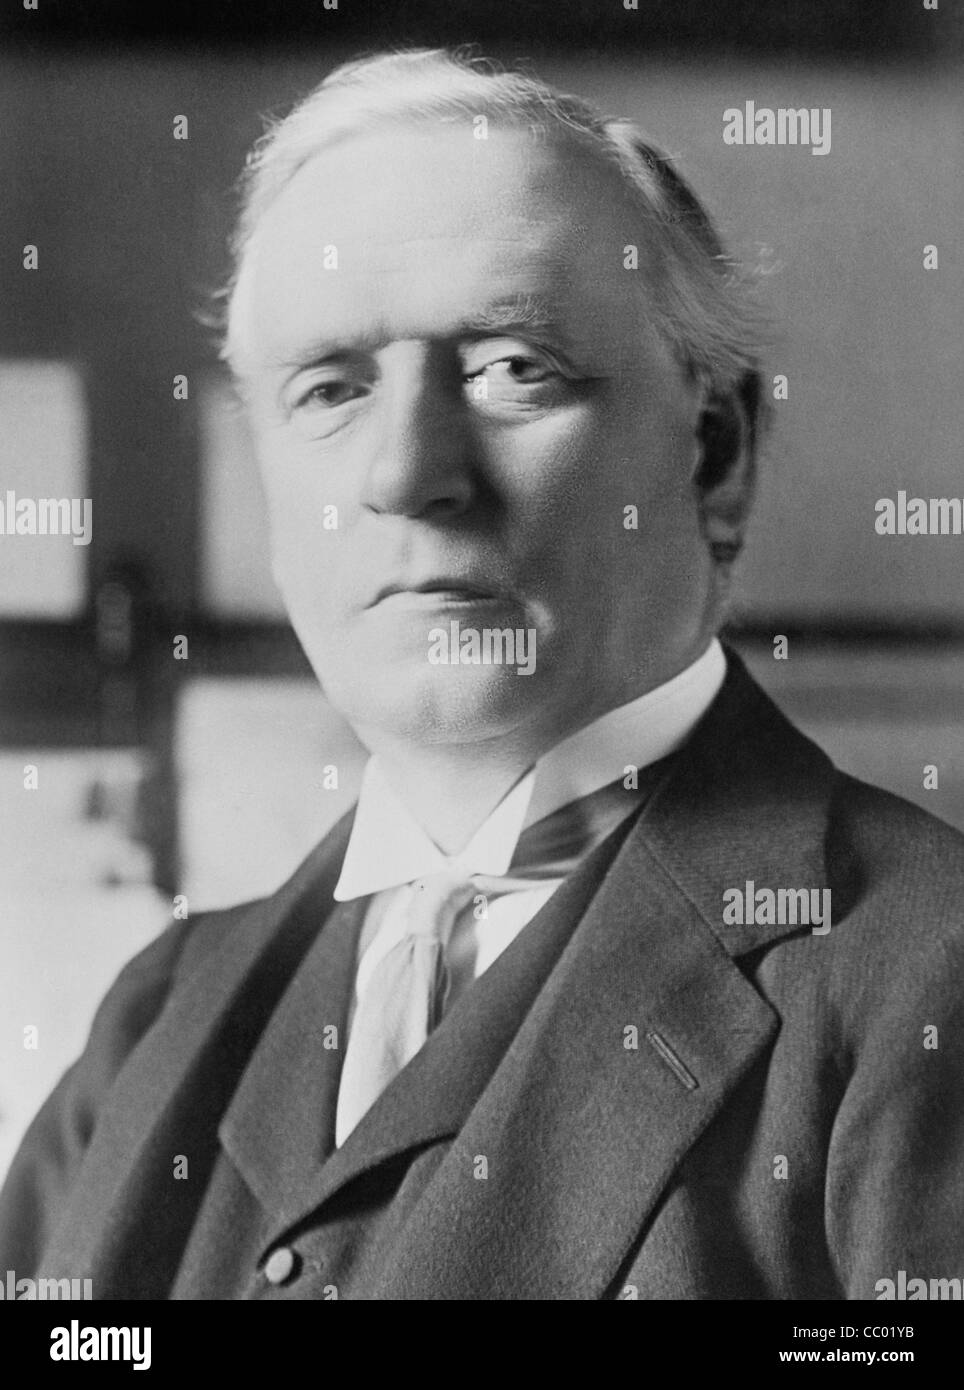 Vintage portrait photo circa 1914 of British politician Herbert Henry Asquith (1852 - 1928) - Liberal Prime Minister - Stock Image